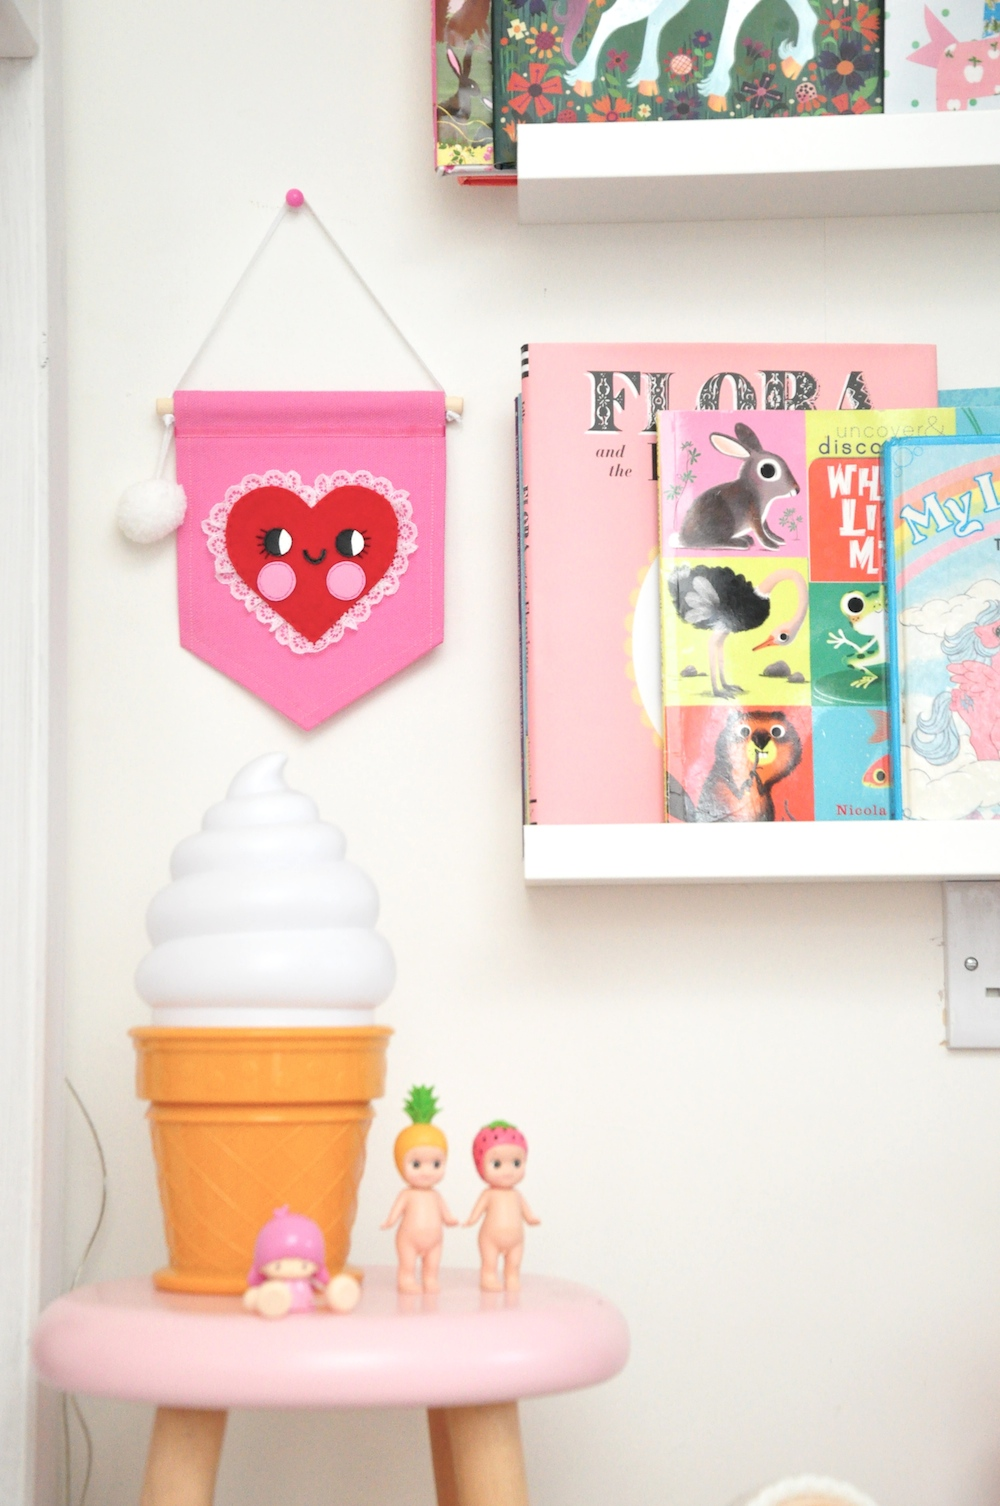 noodle_doll_nelly_banner_heart_ice_cream-lamp